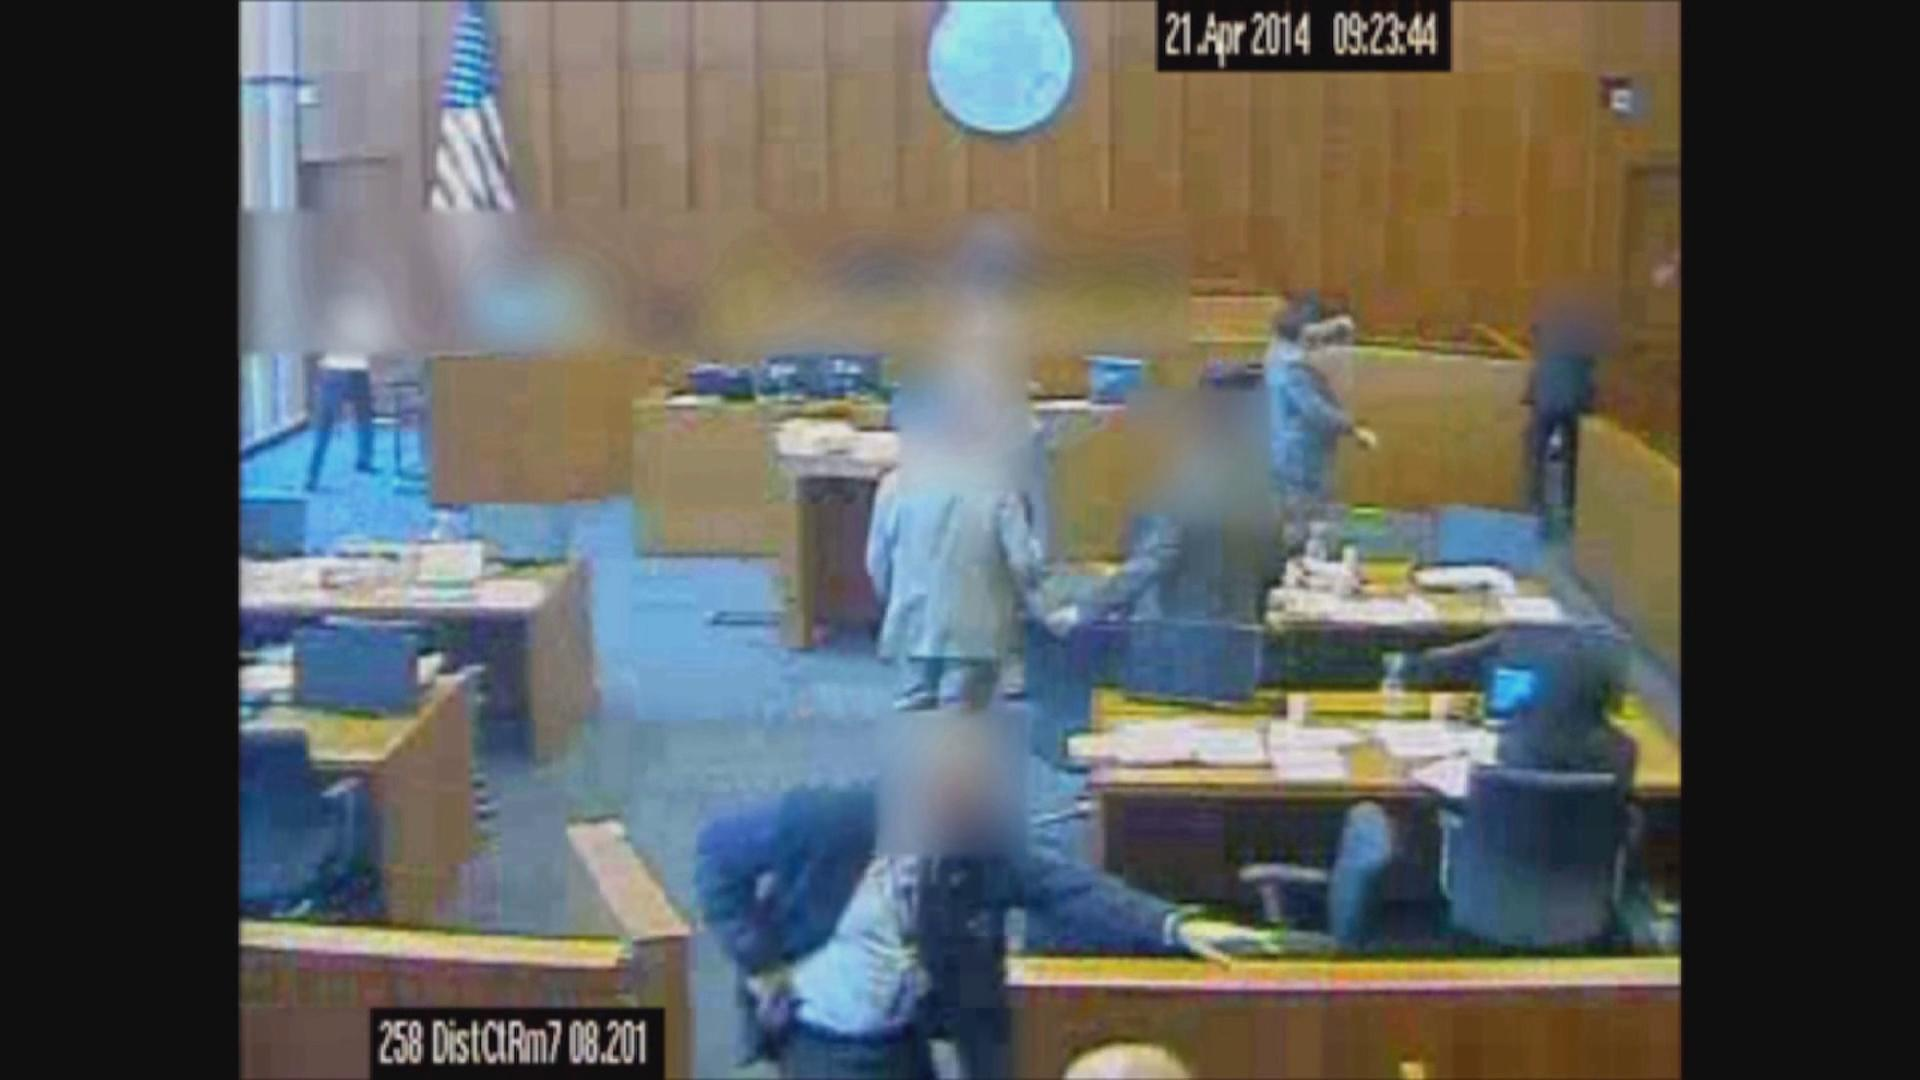 Angilau Courtroom Footage TV(Non-Explicit)